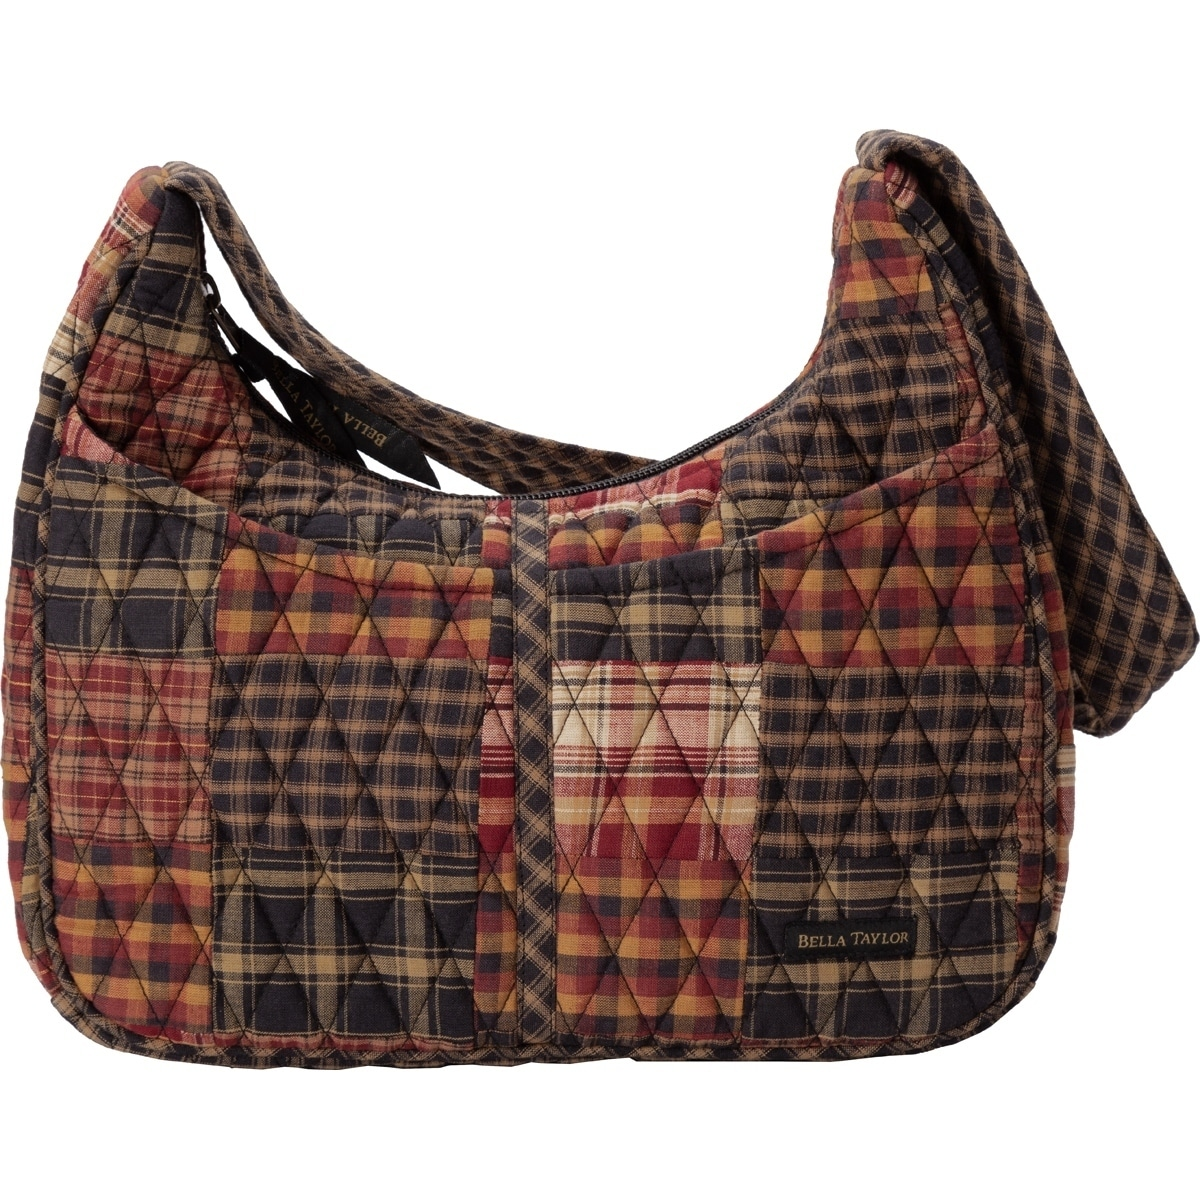 Vhc Beckham Rust Red Bella Taylor Handbags Plaid Blakely Free Shipping On Orders Over 45 22889777